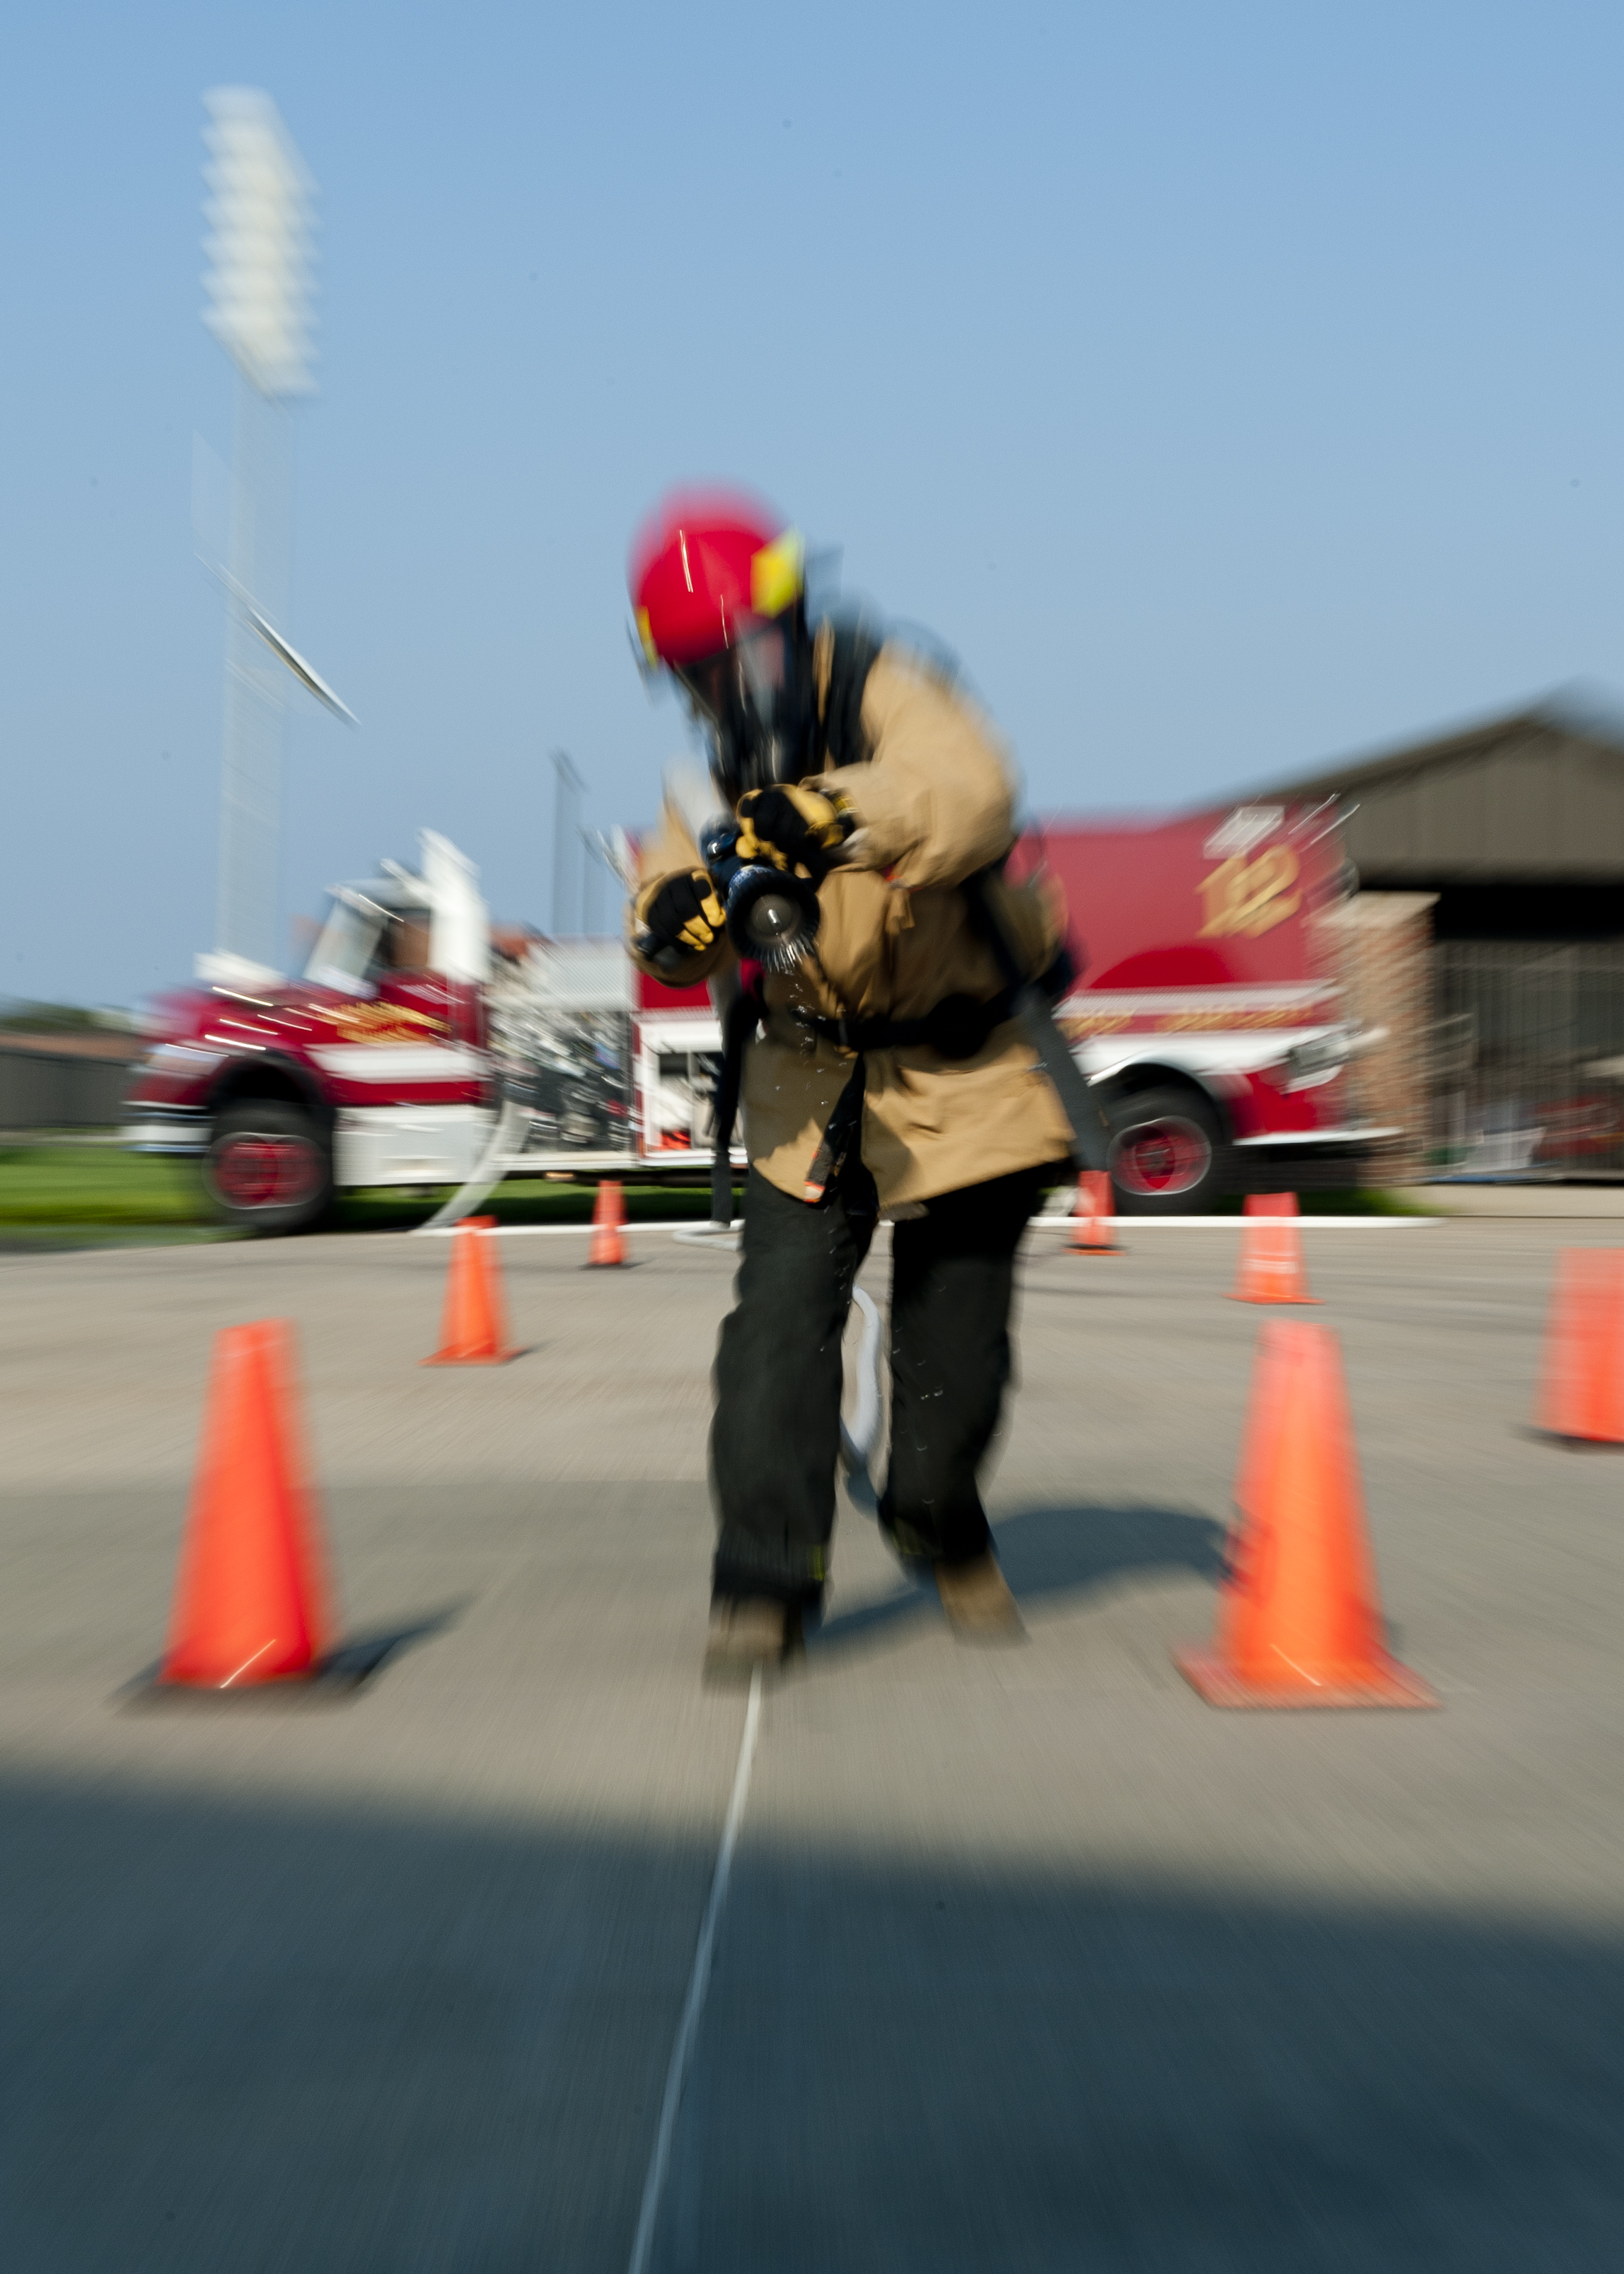 Gearing Up for the Firefighter Combat Challenge